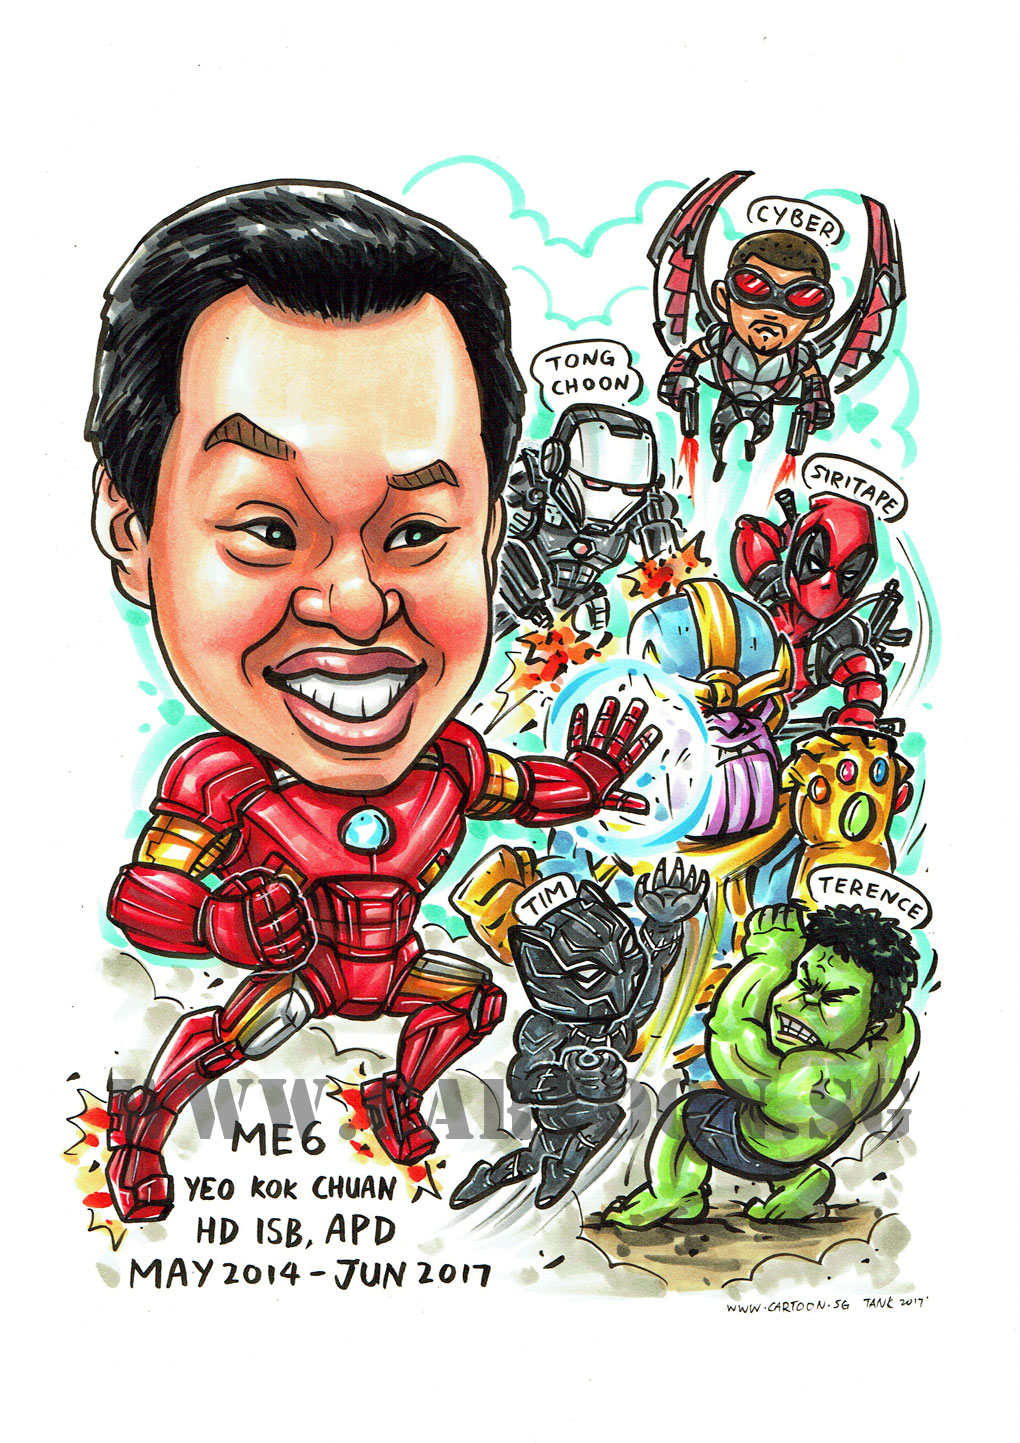 2017-07-07-Caricature-Singapore-superheroes-awesome-black-panther-hulk-marvel-fight-thanos-deadpool-warmachine-ironman.jpg